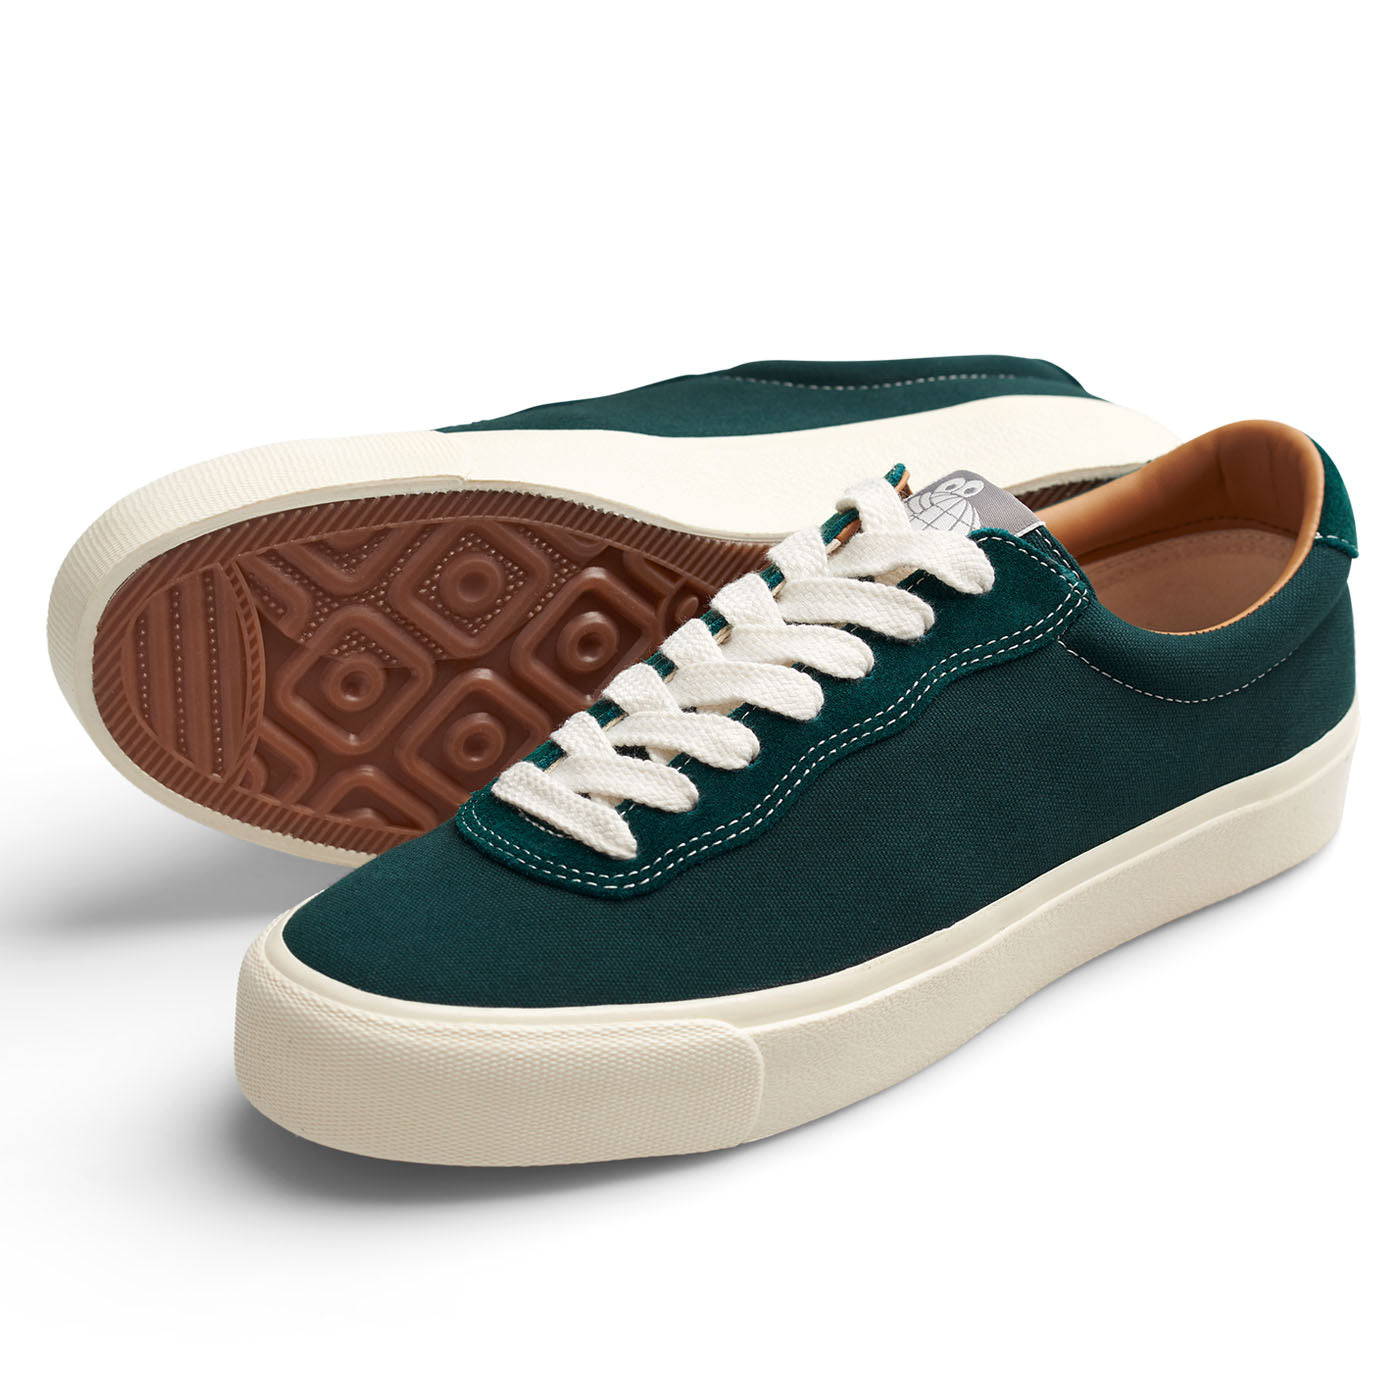 "Last Resort AB - VM001 Canvas Lo - ""Emerald / White"""